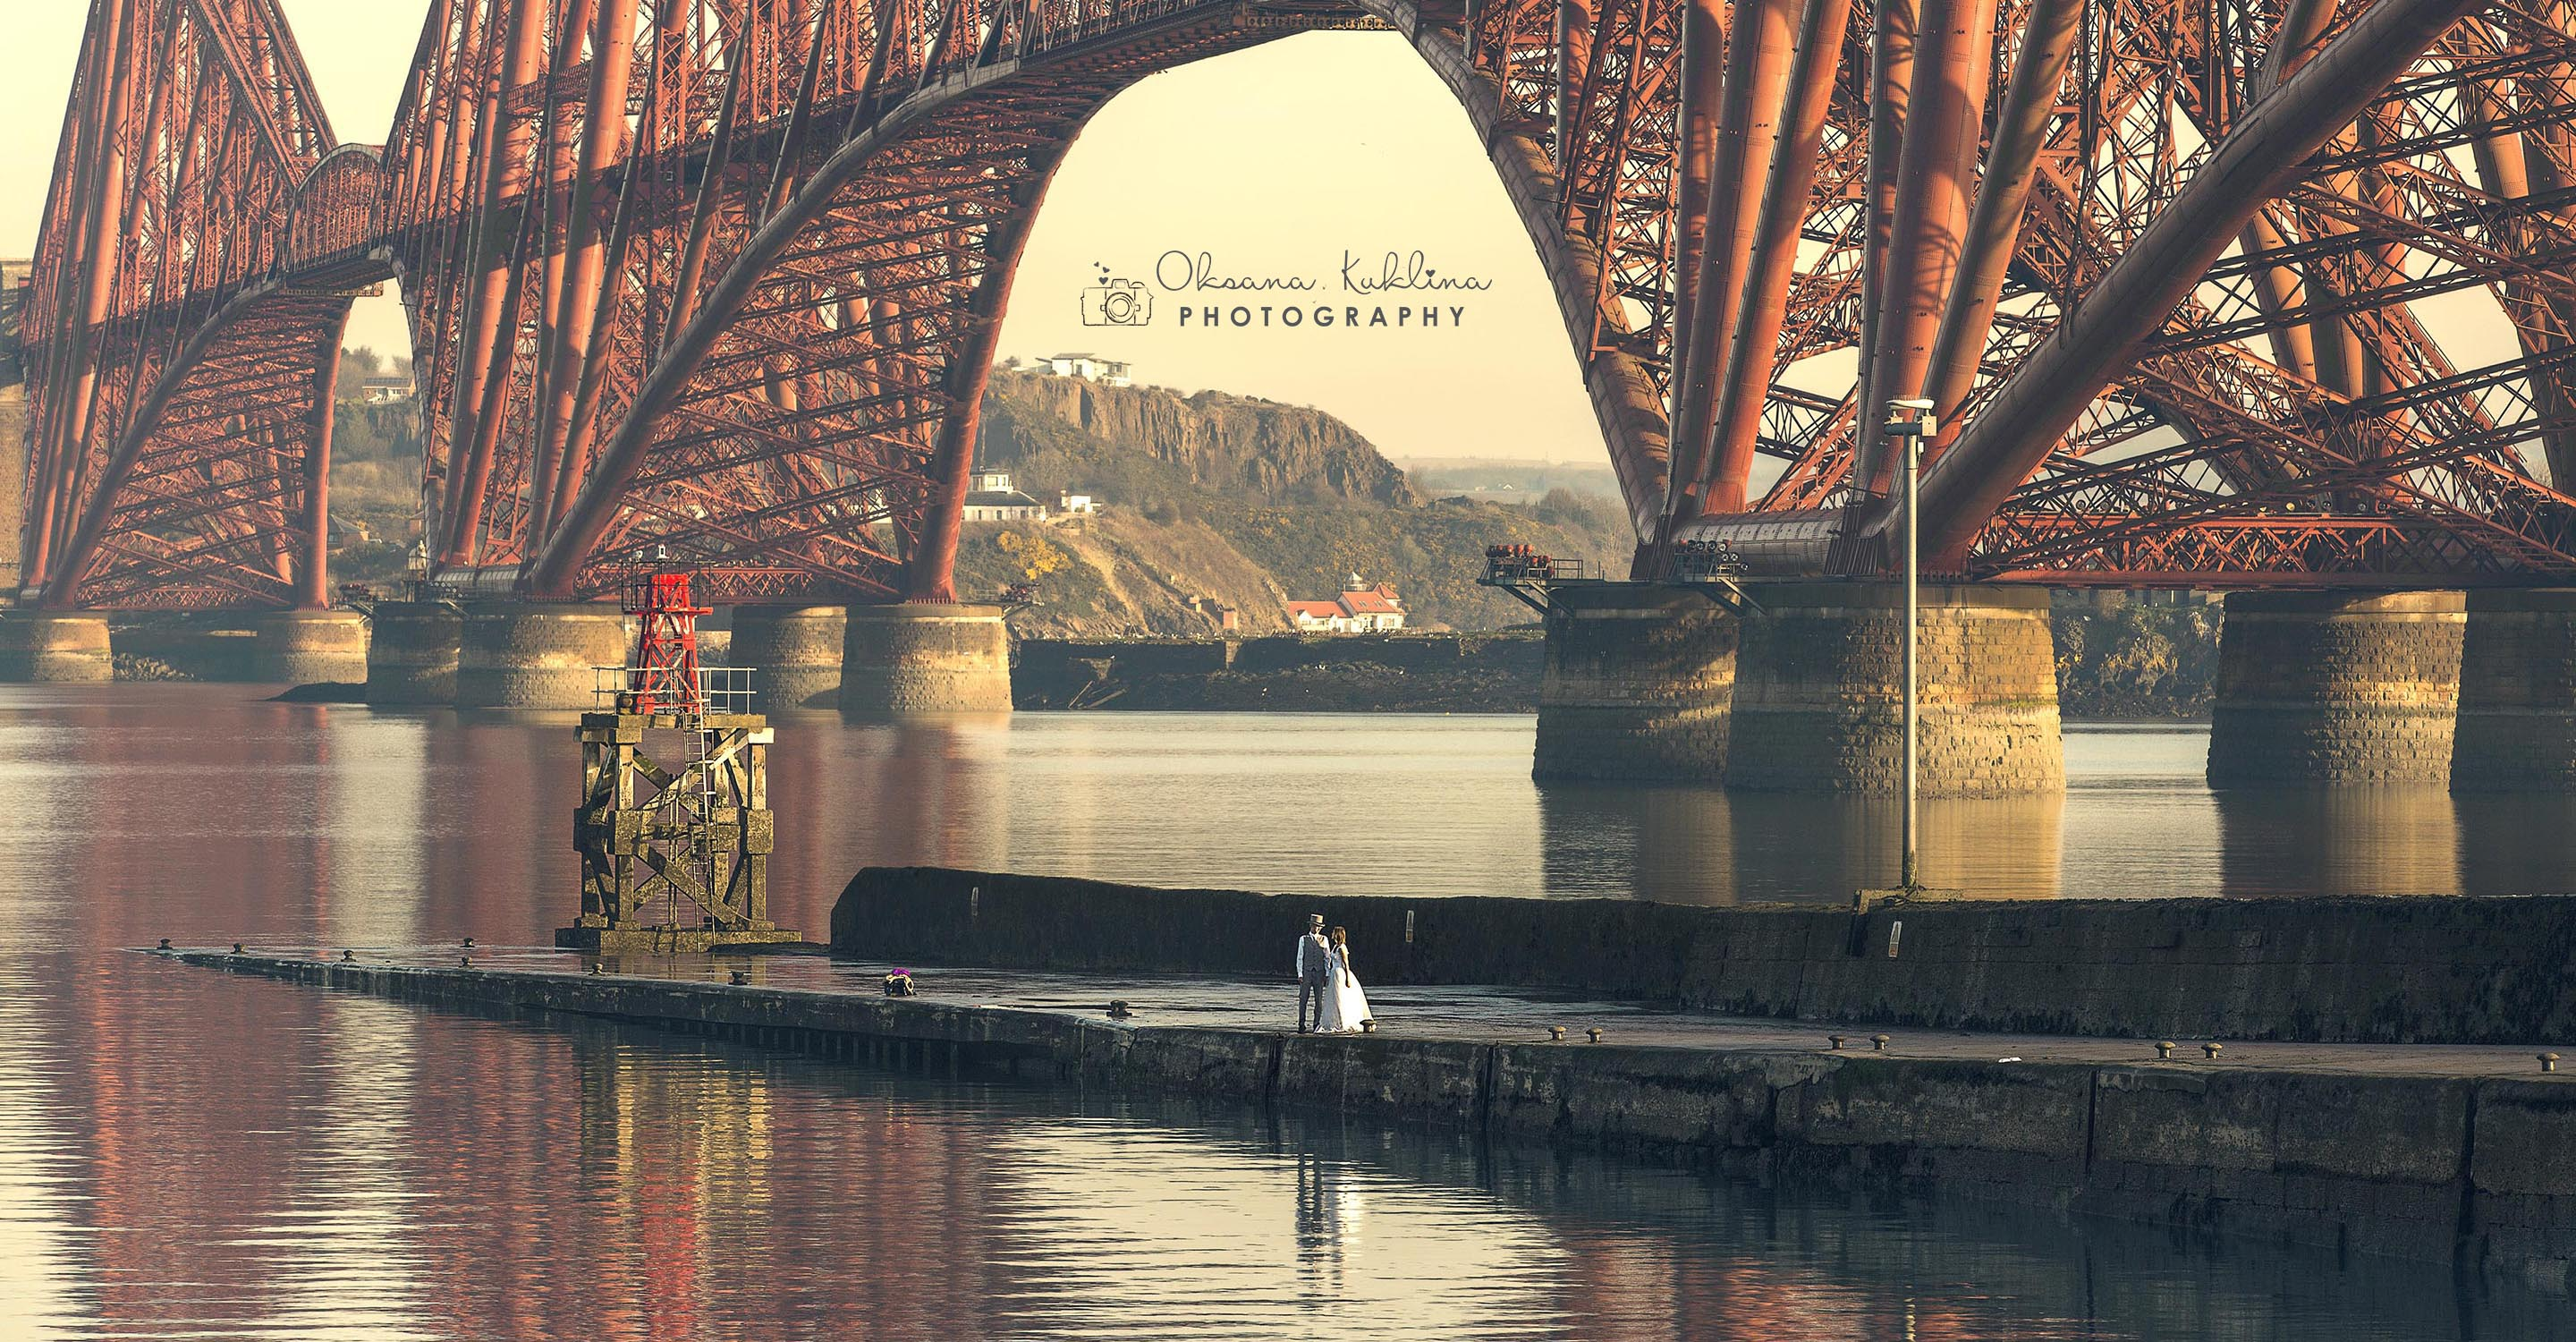 The Forth Bridge Elopement Photographer - Edinburgh Wedding Photo  - Scotland adventurous elopement - Adventurous couple elopement